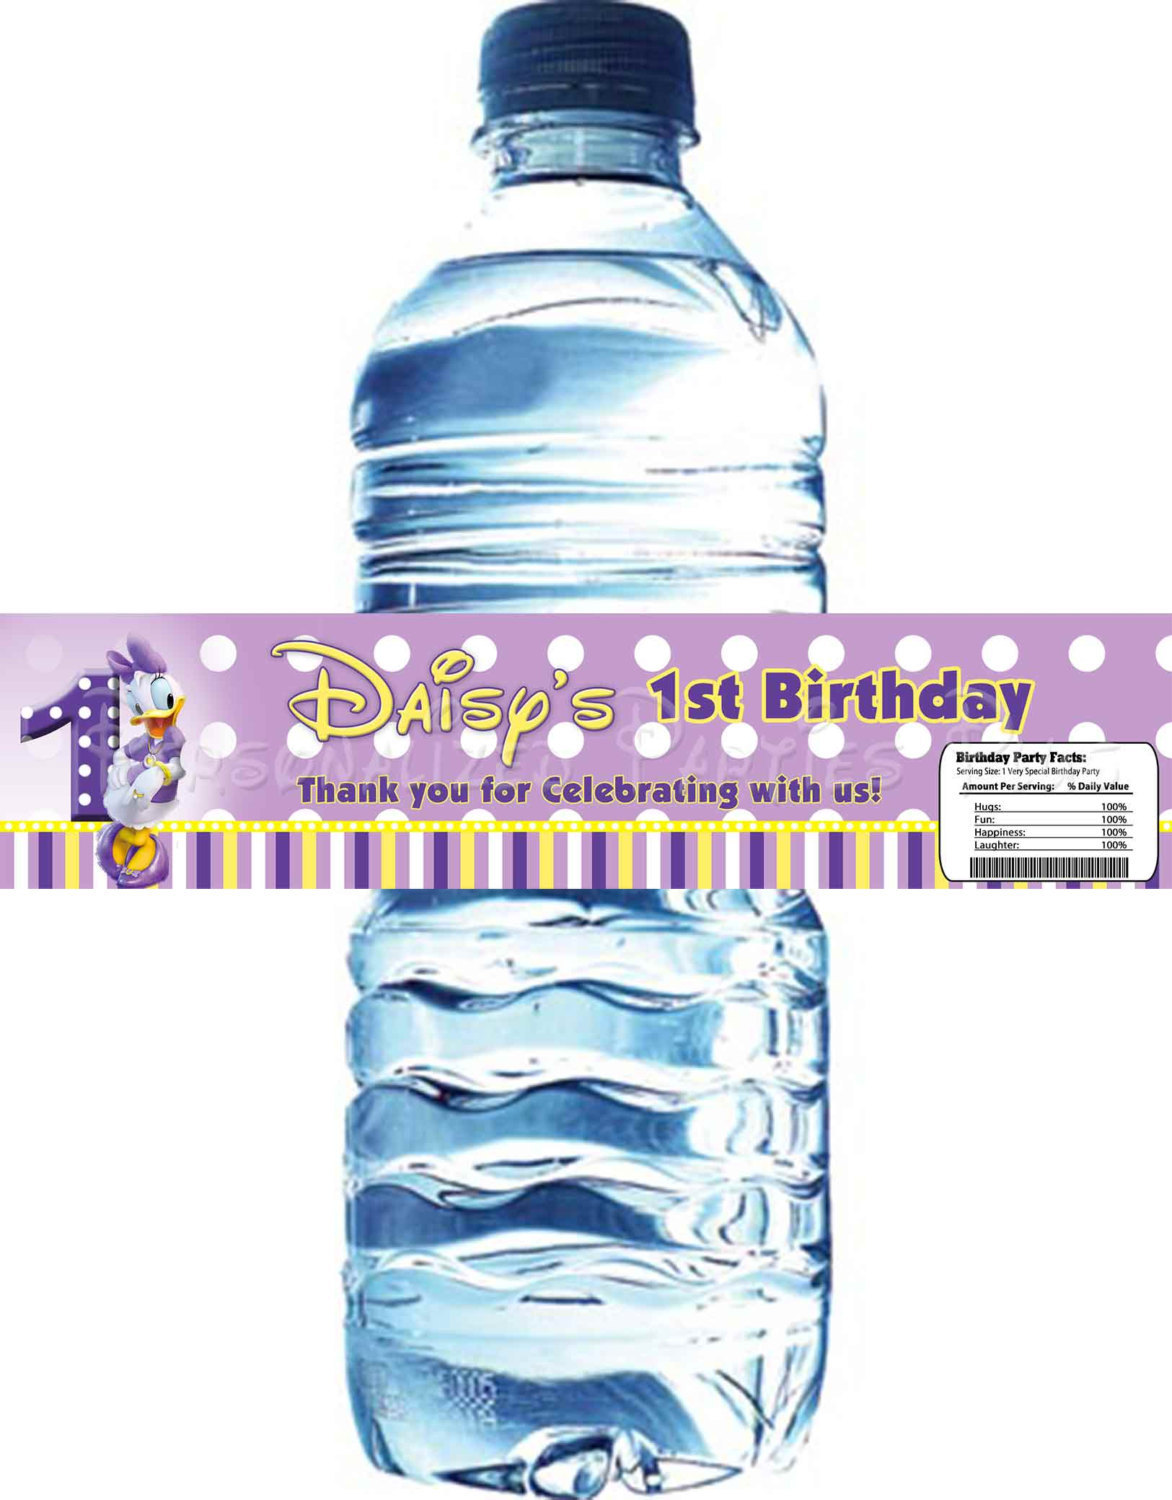 Daisy Duck water bottle labels for birthday parties